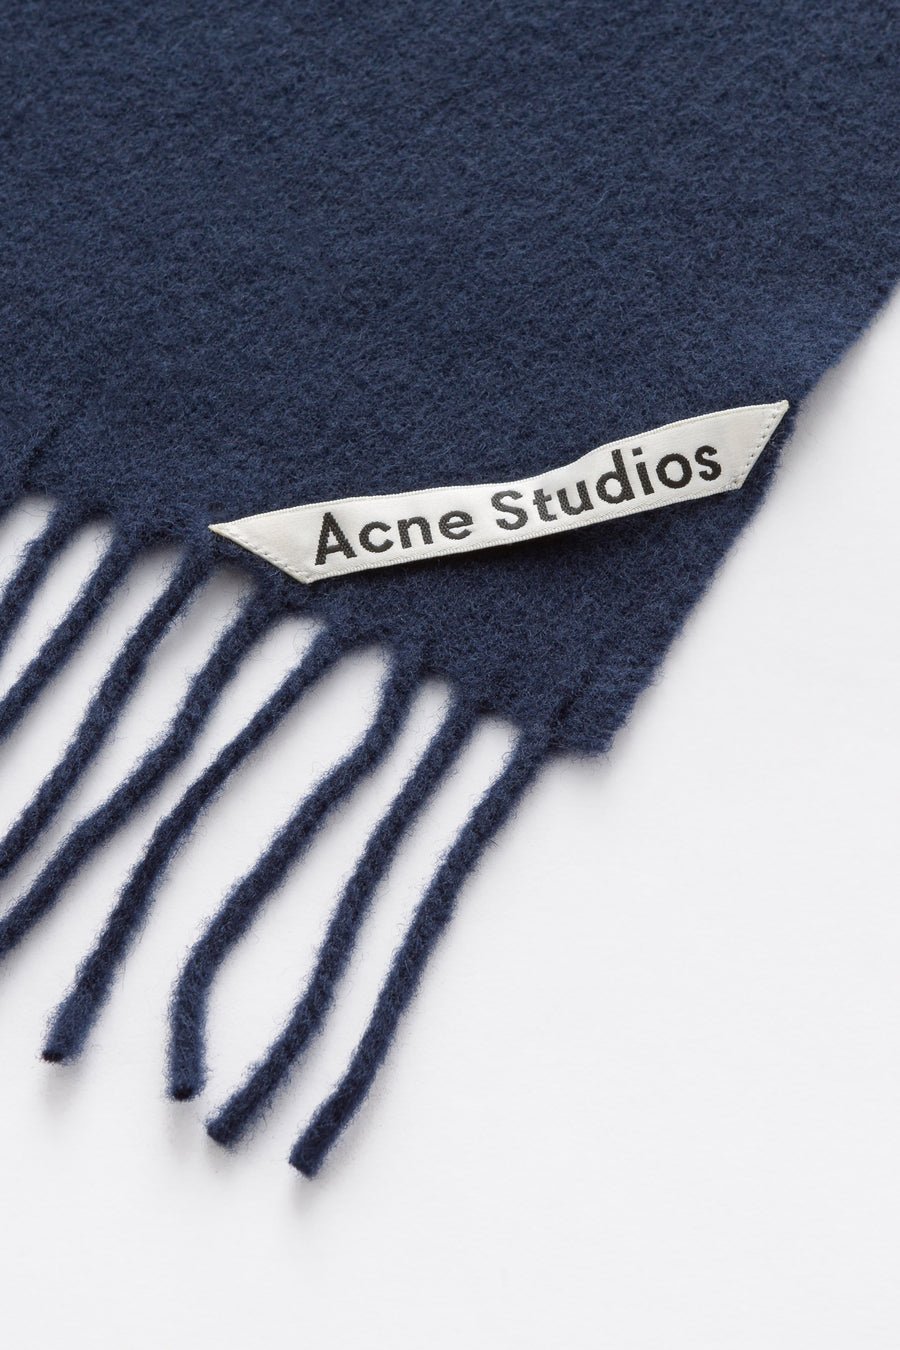 Acne Studios Canada New Scarf in Navy Blue - Notre